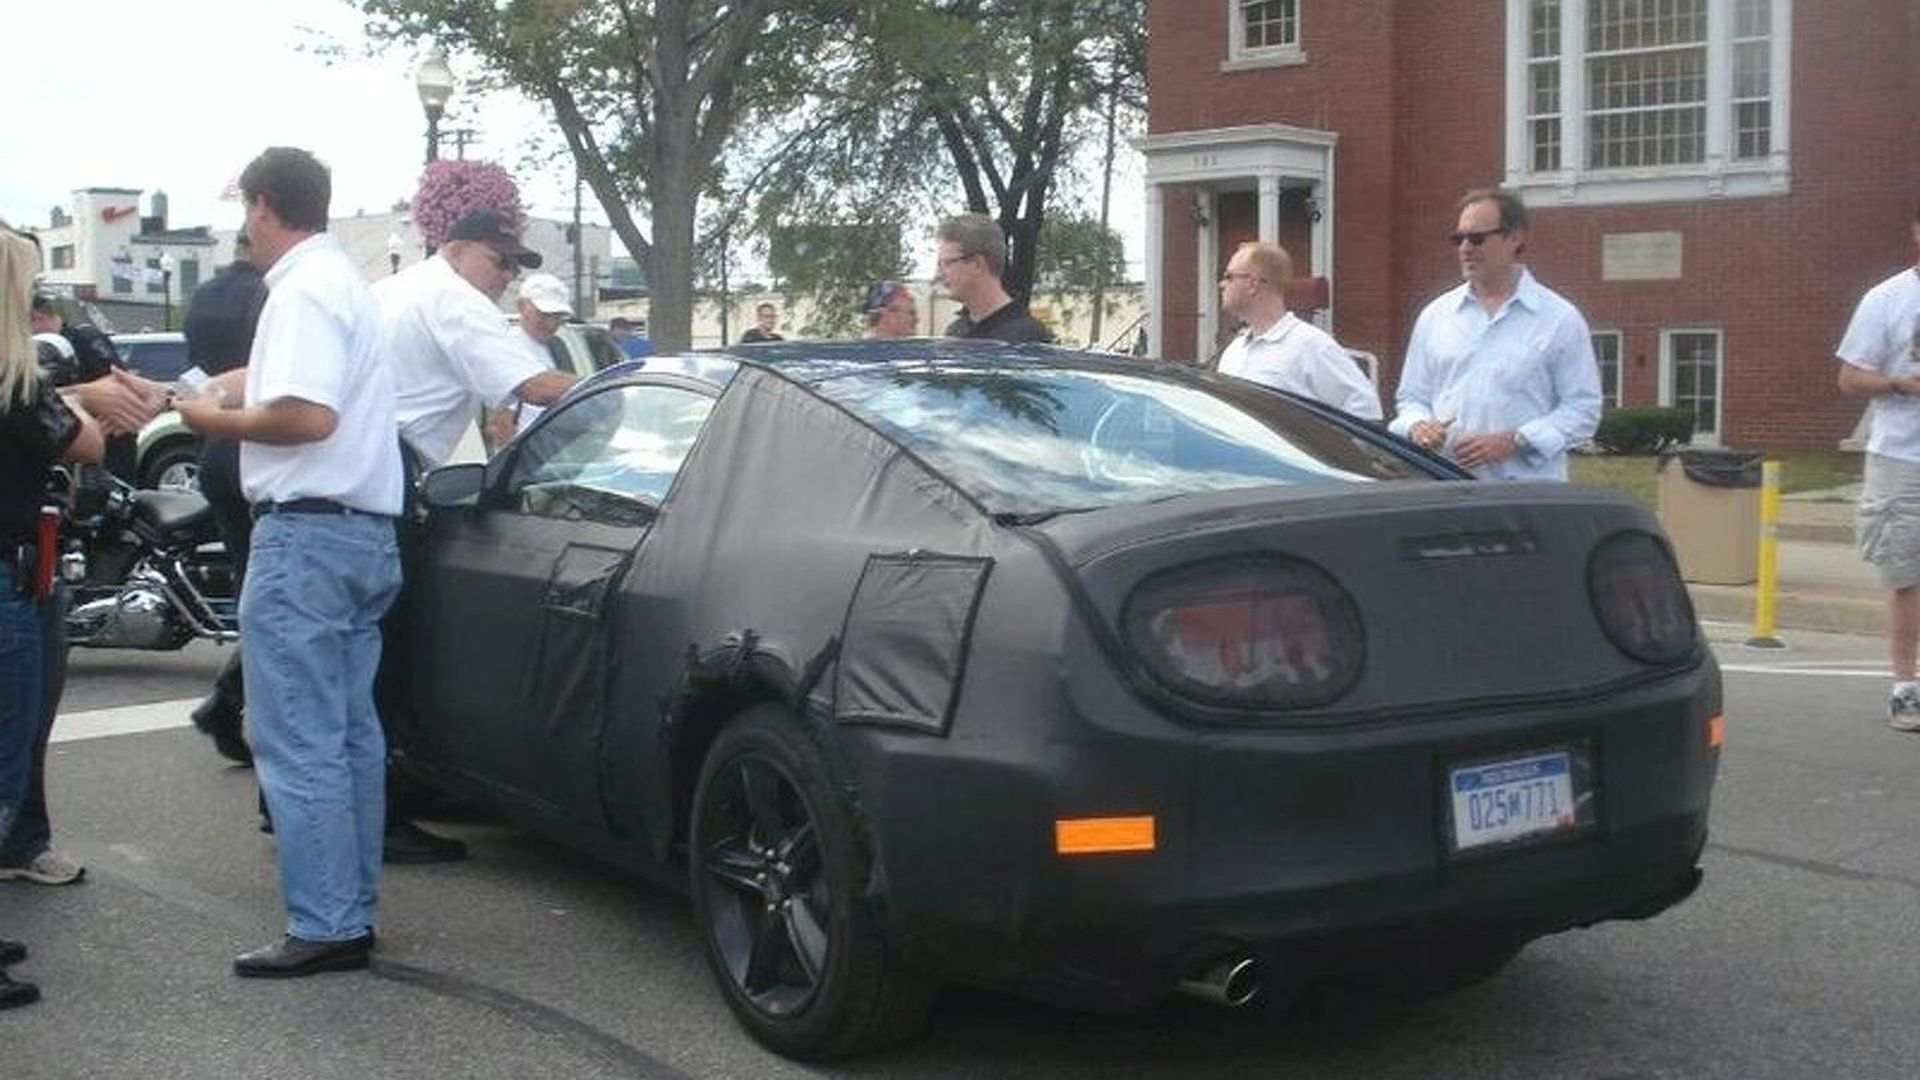 2010 Ford Mustang Spied at Street Fair